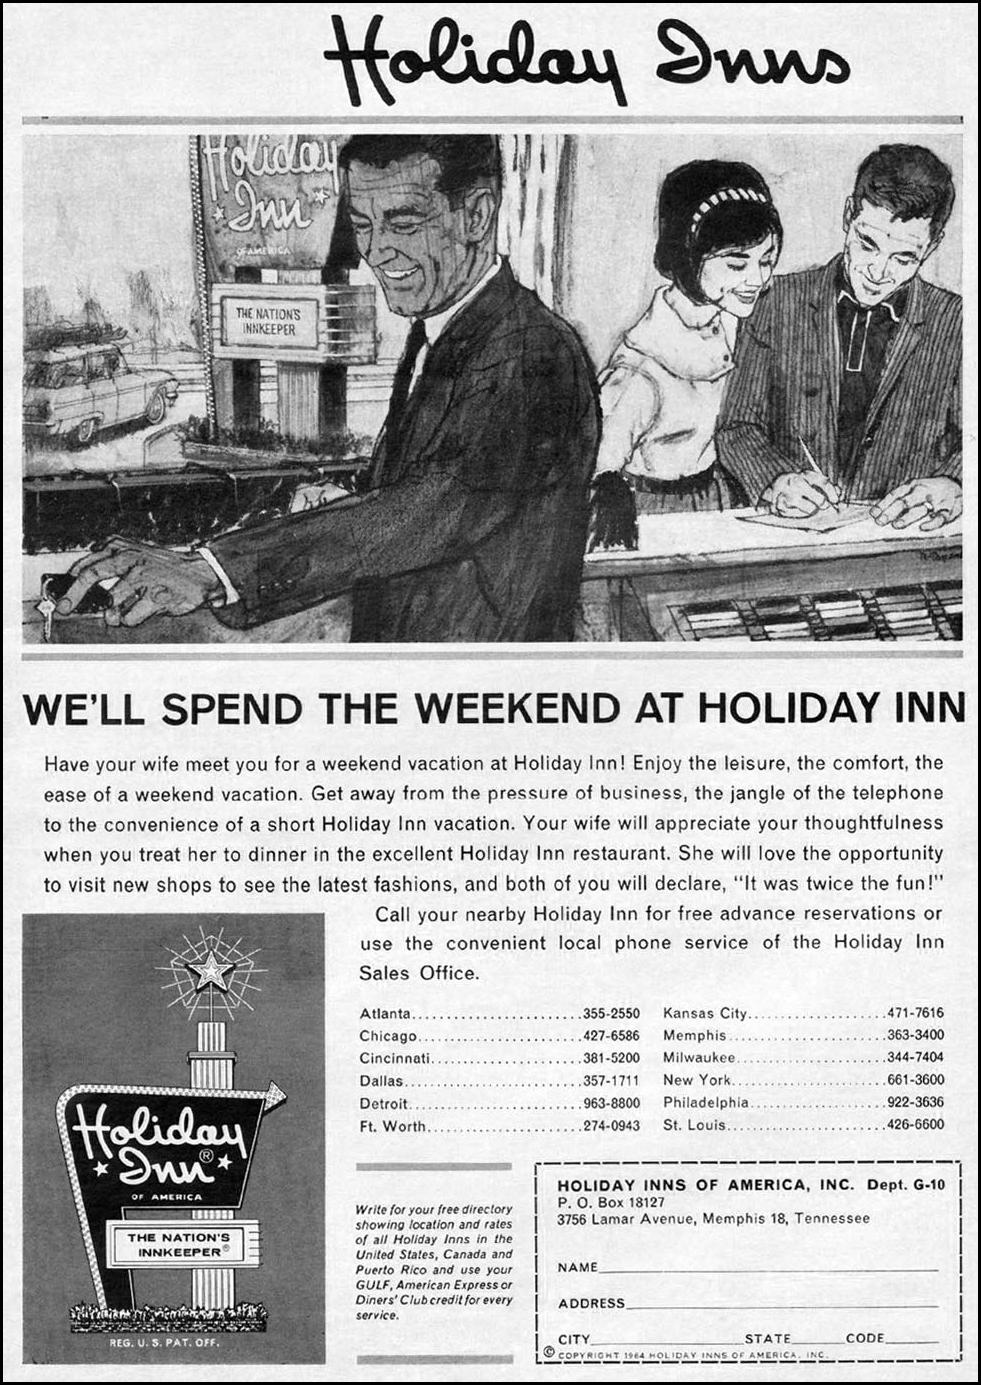 HOLIDAY INN MOTELS NEWSWEEK 10/12/1964 p. 113